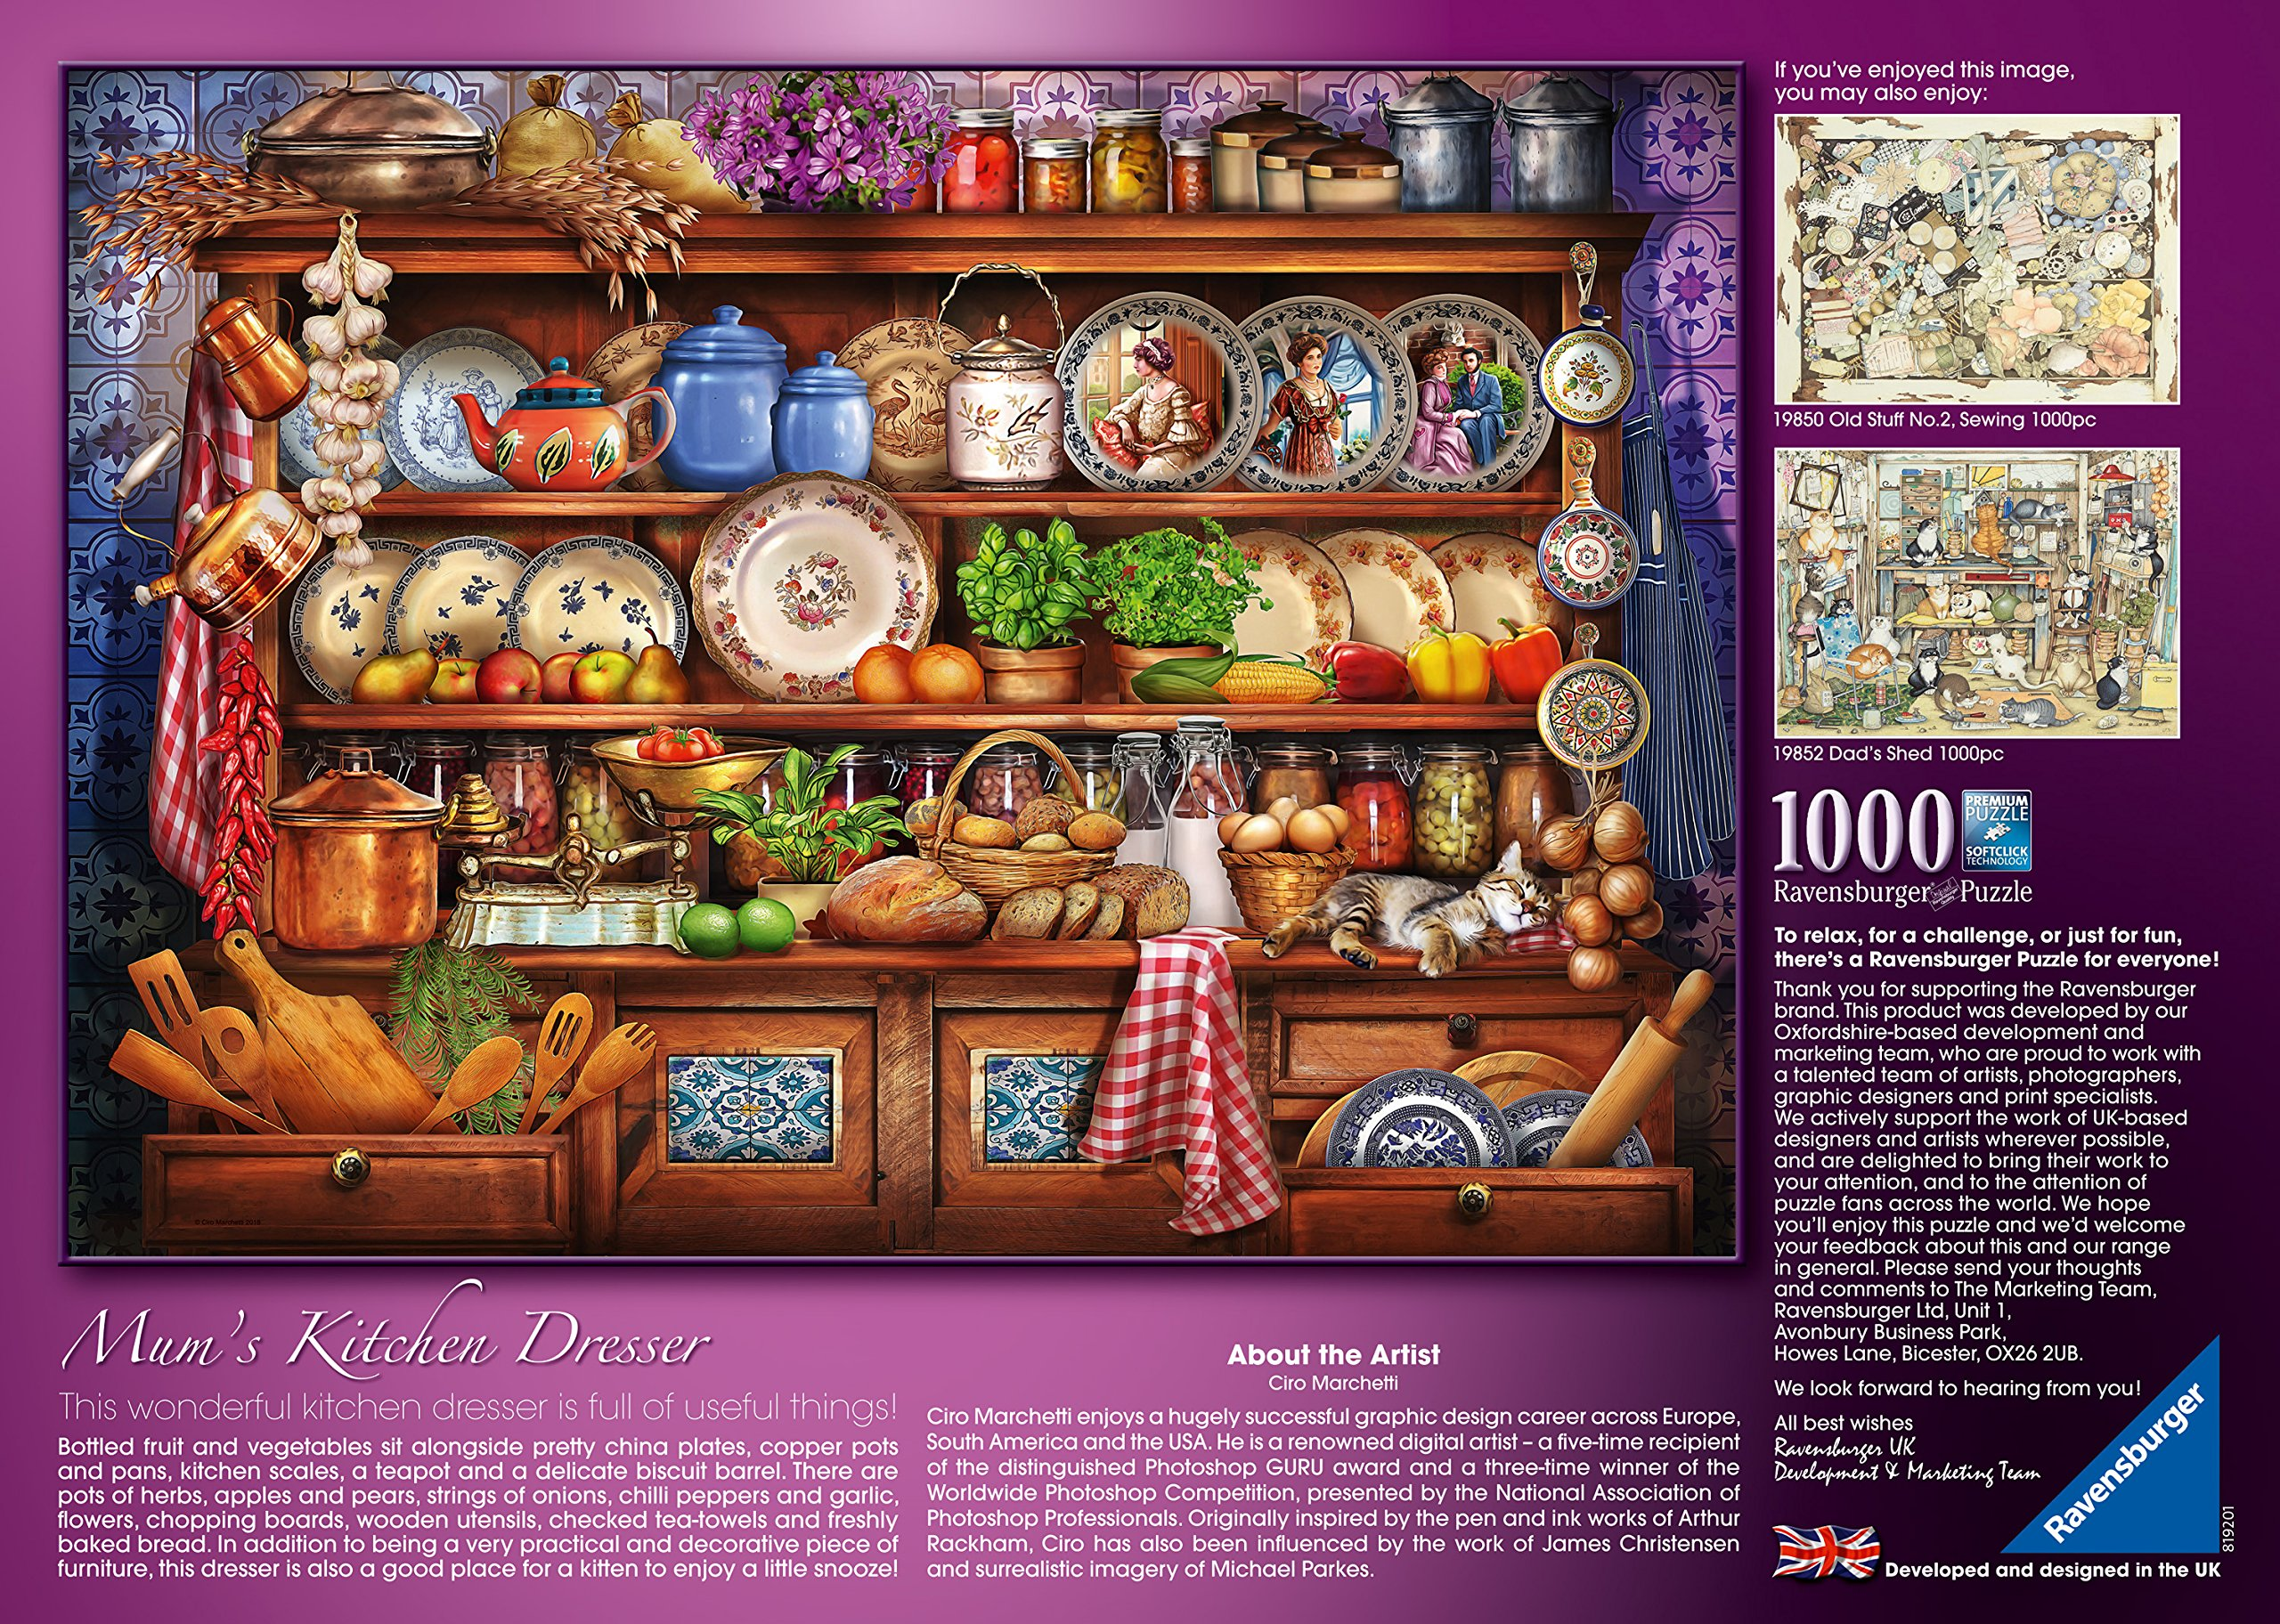 Ravensburger 19850 High Quality Old Stuff No.1 Sewing 1000 Pieces Jigsaw Puzzle